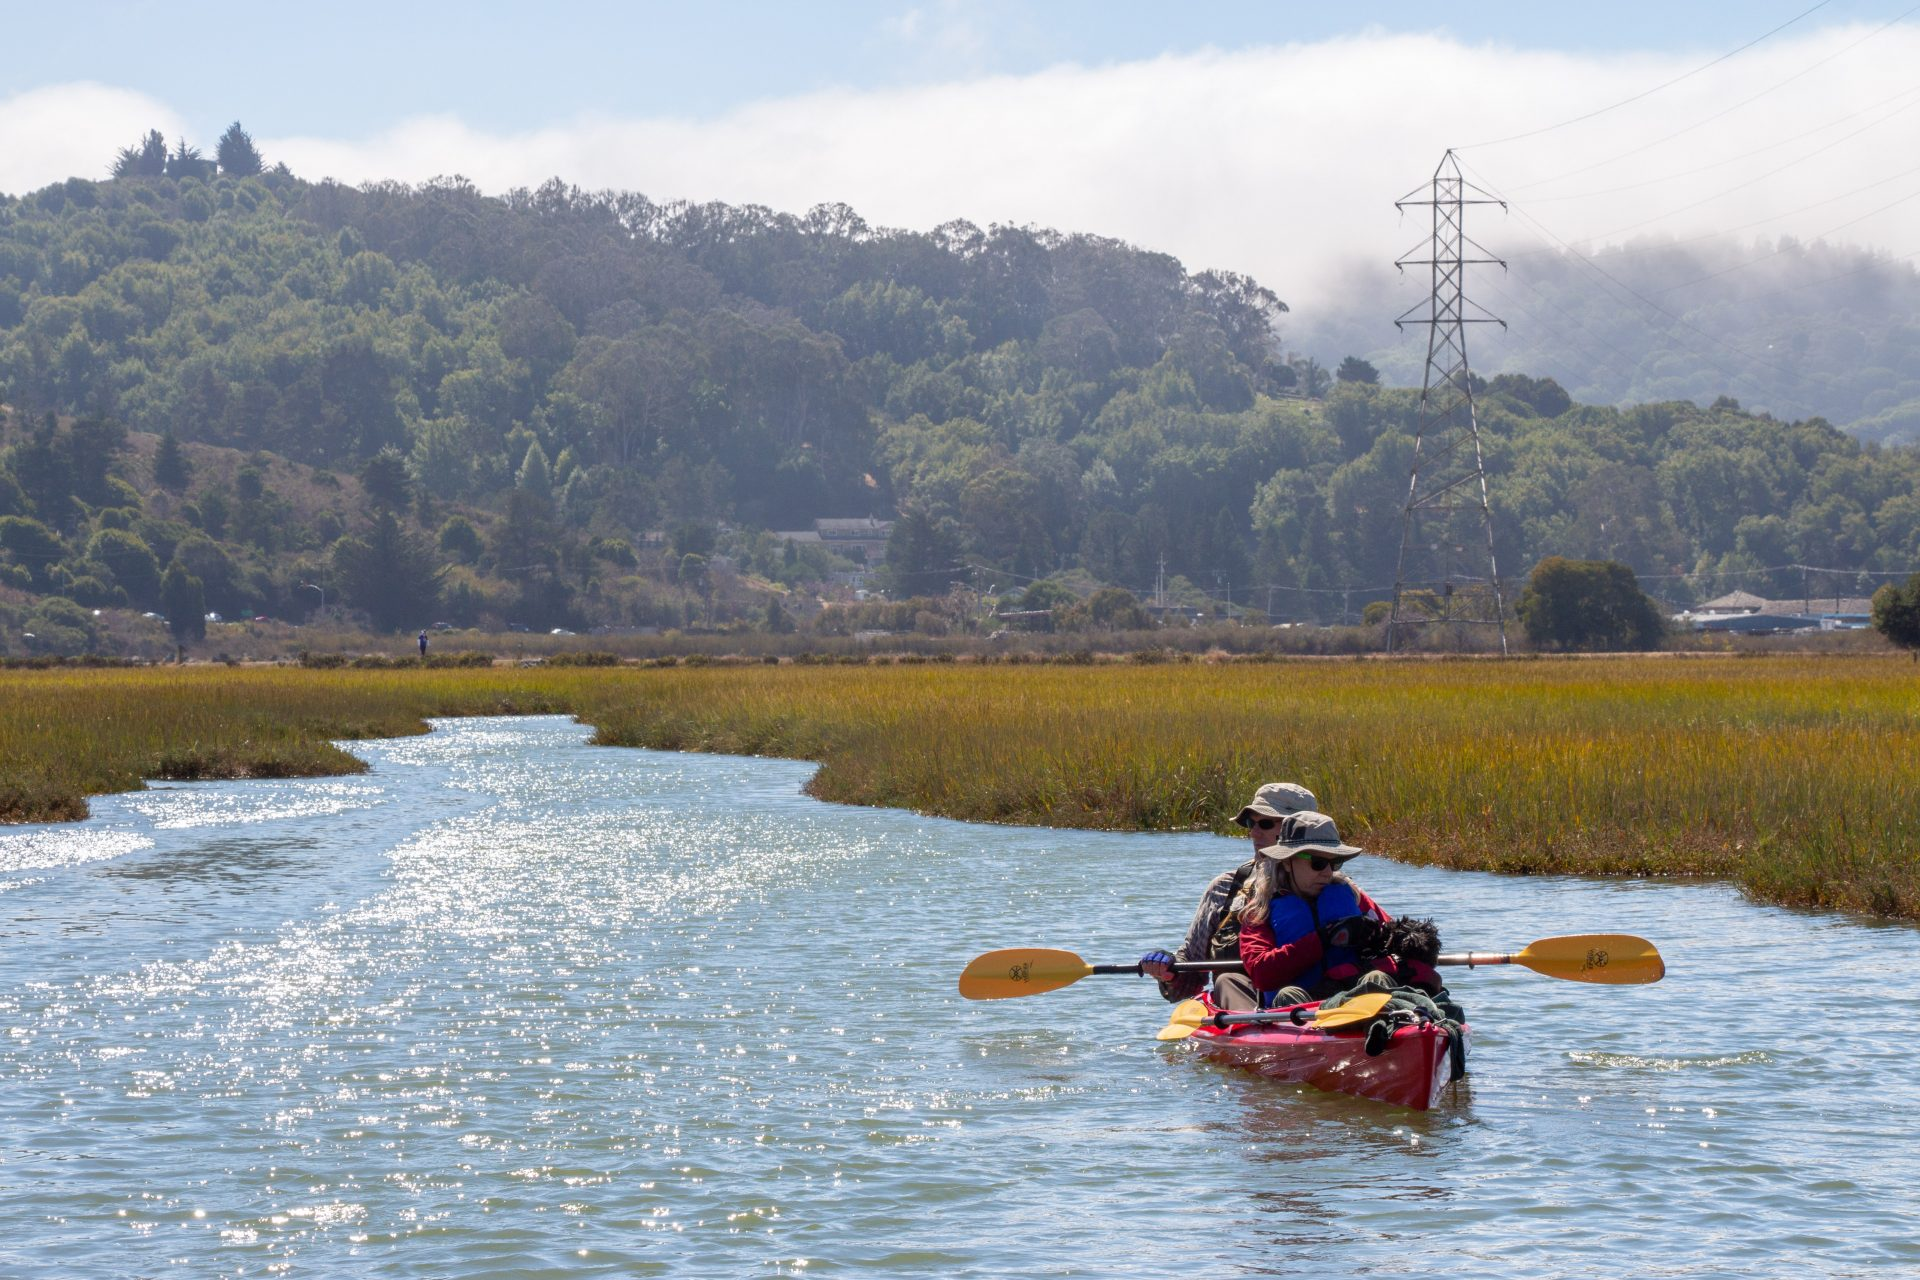 double kayaker paddling toward the camera, in a marsh channel with hills beyond